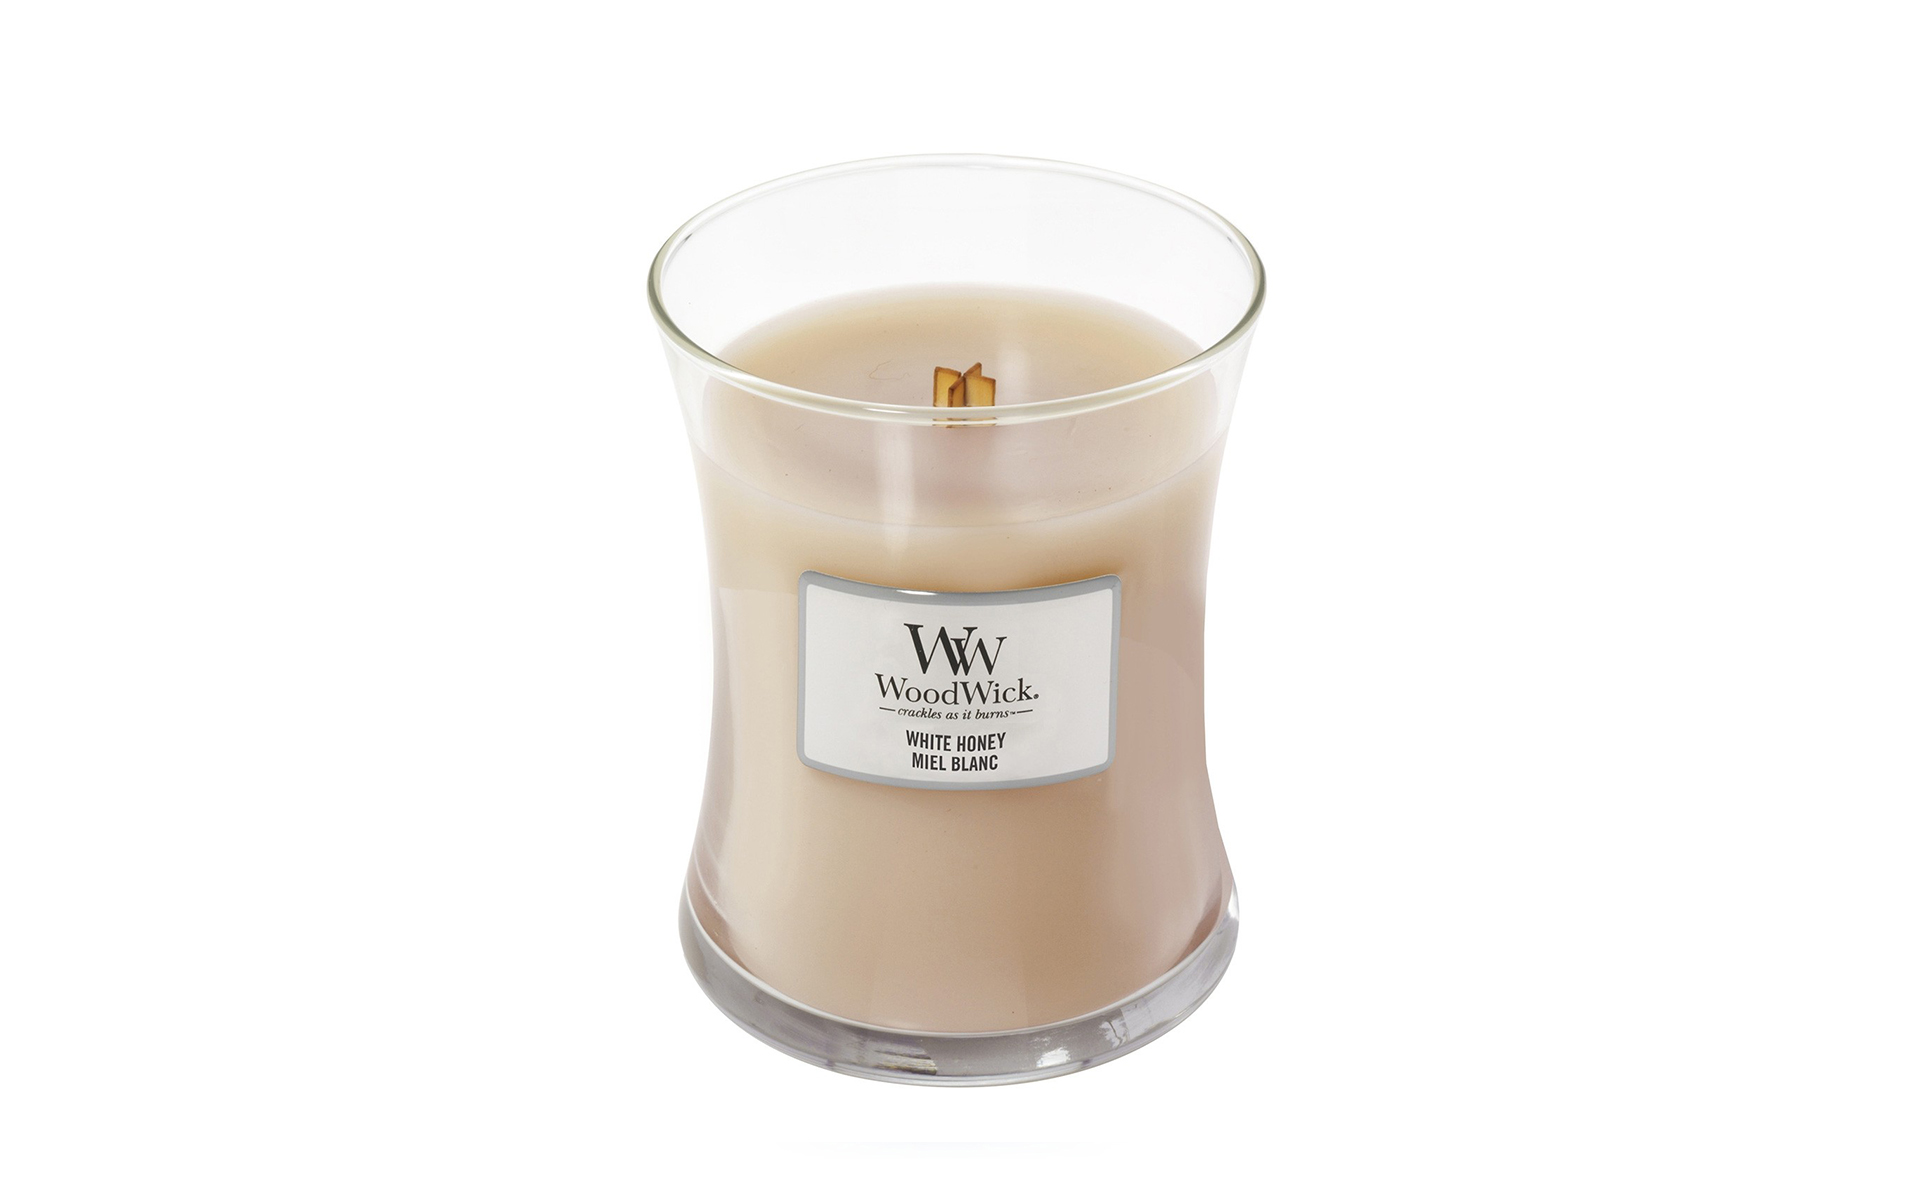 WoodWick Jarro Vela Perfumada White Honey